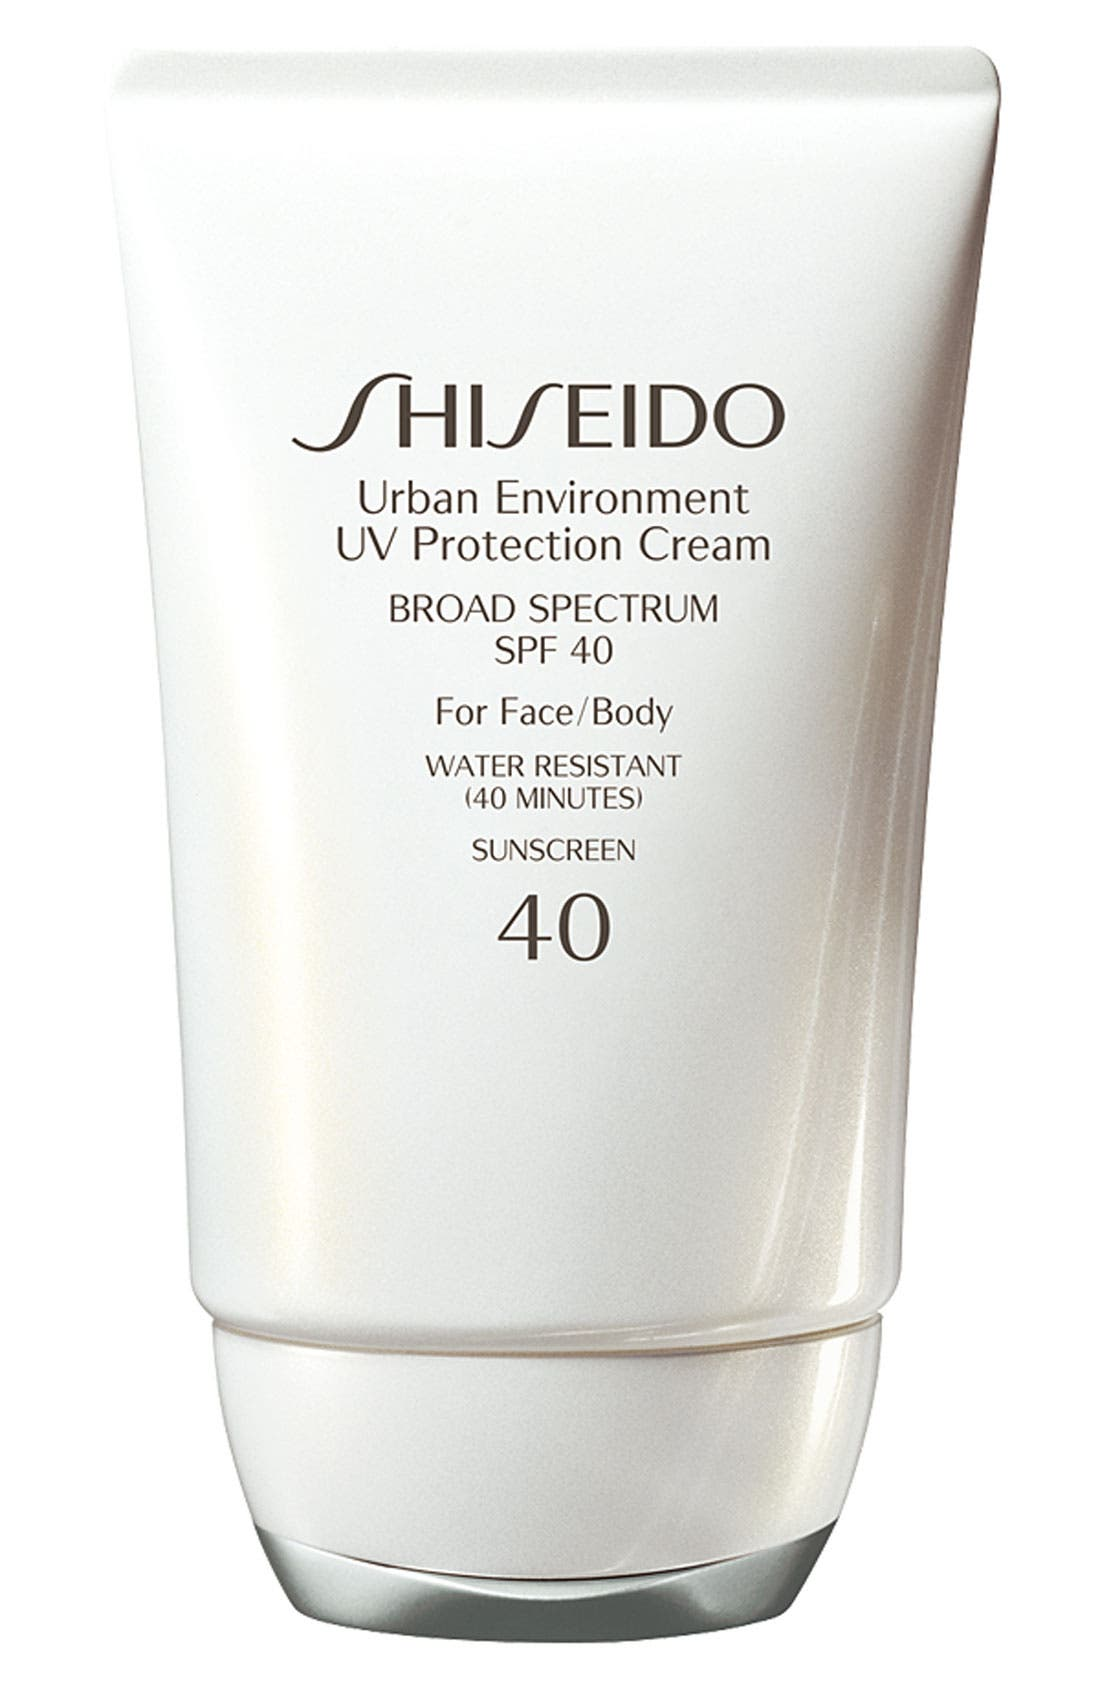 Urban Environment UV Protection Cream SPF 40, Main, color, 000